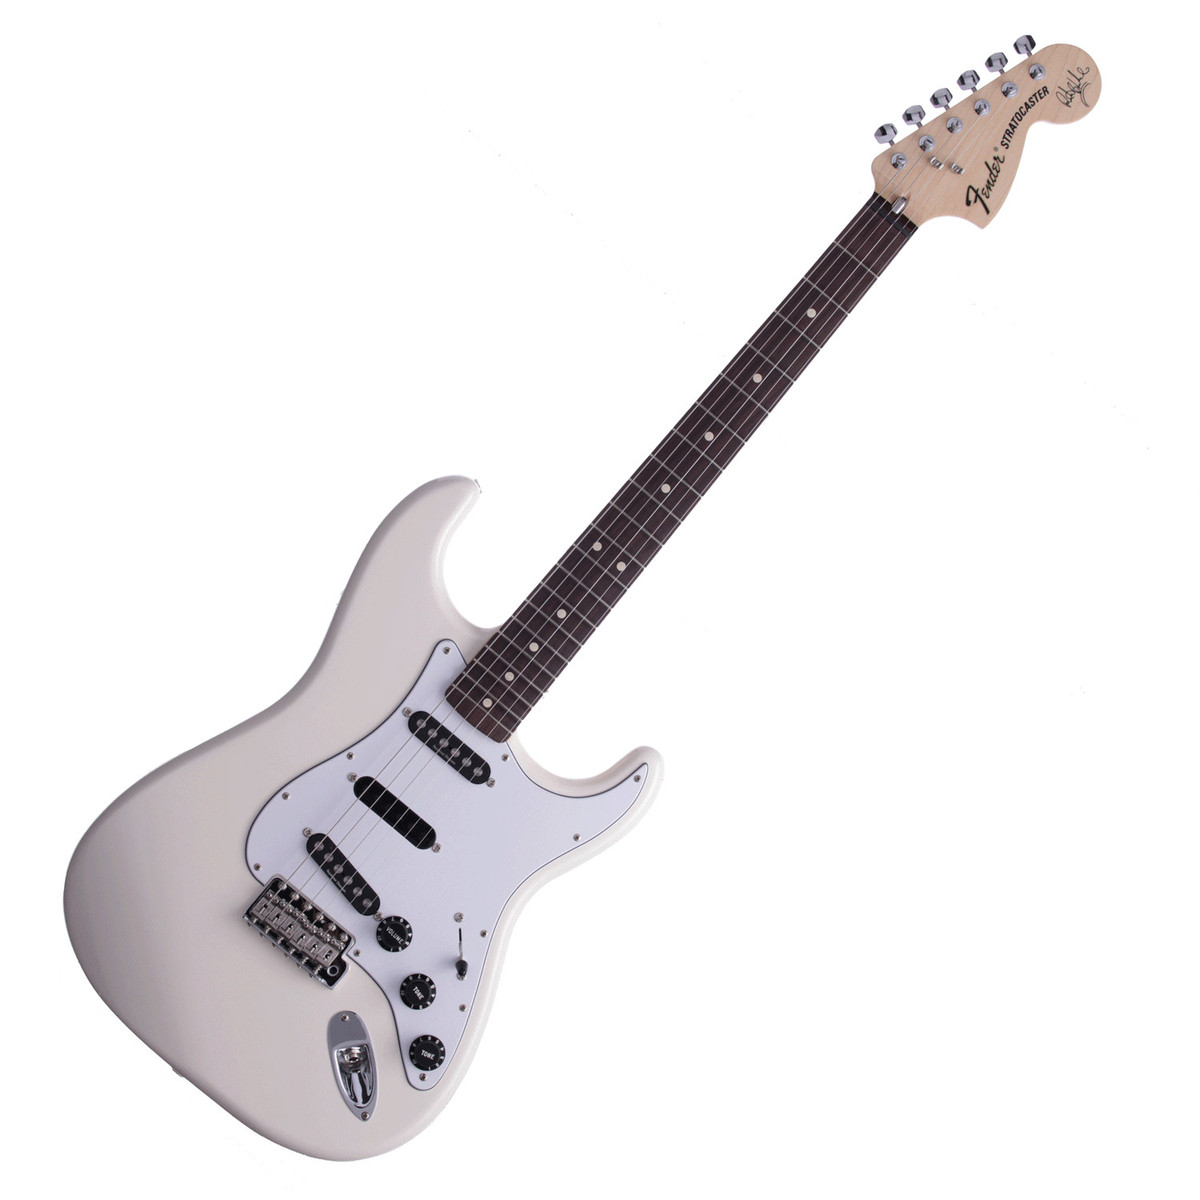 fender ritchie blackmore stratocaster electric guitar olympic white at gear4music. Black Bedroom Furniture Sets. Home Design Ideas